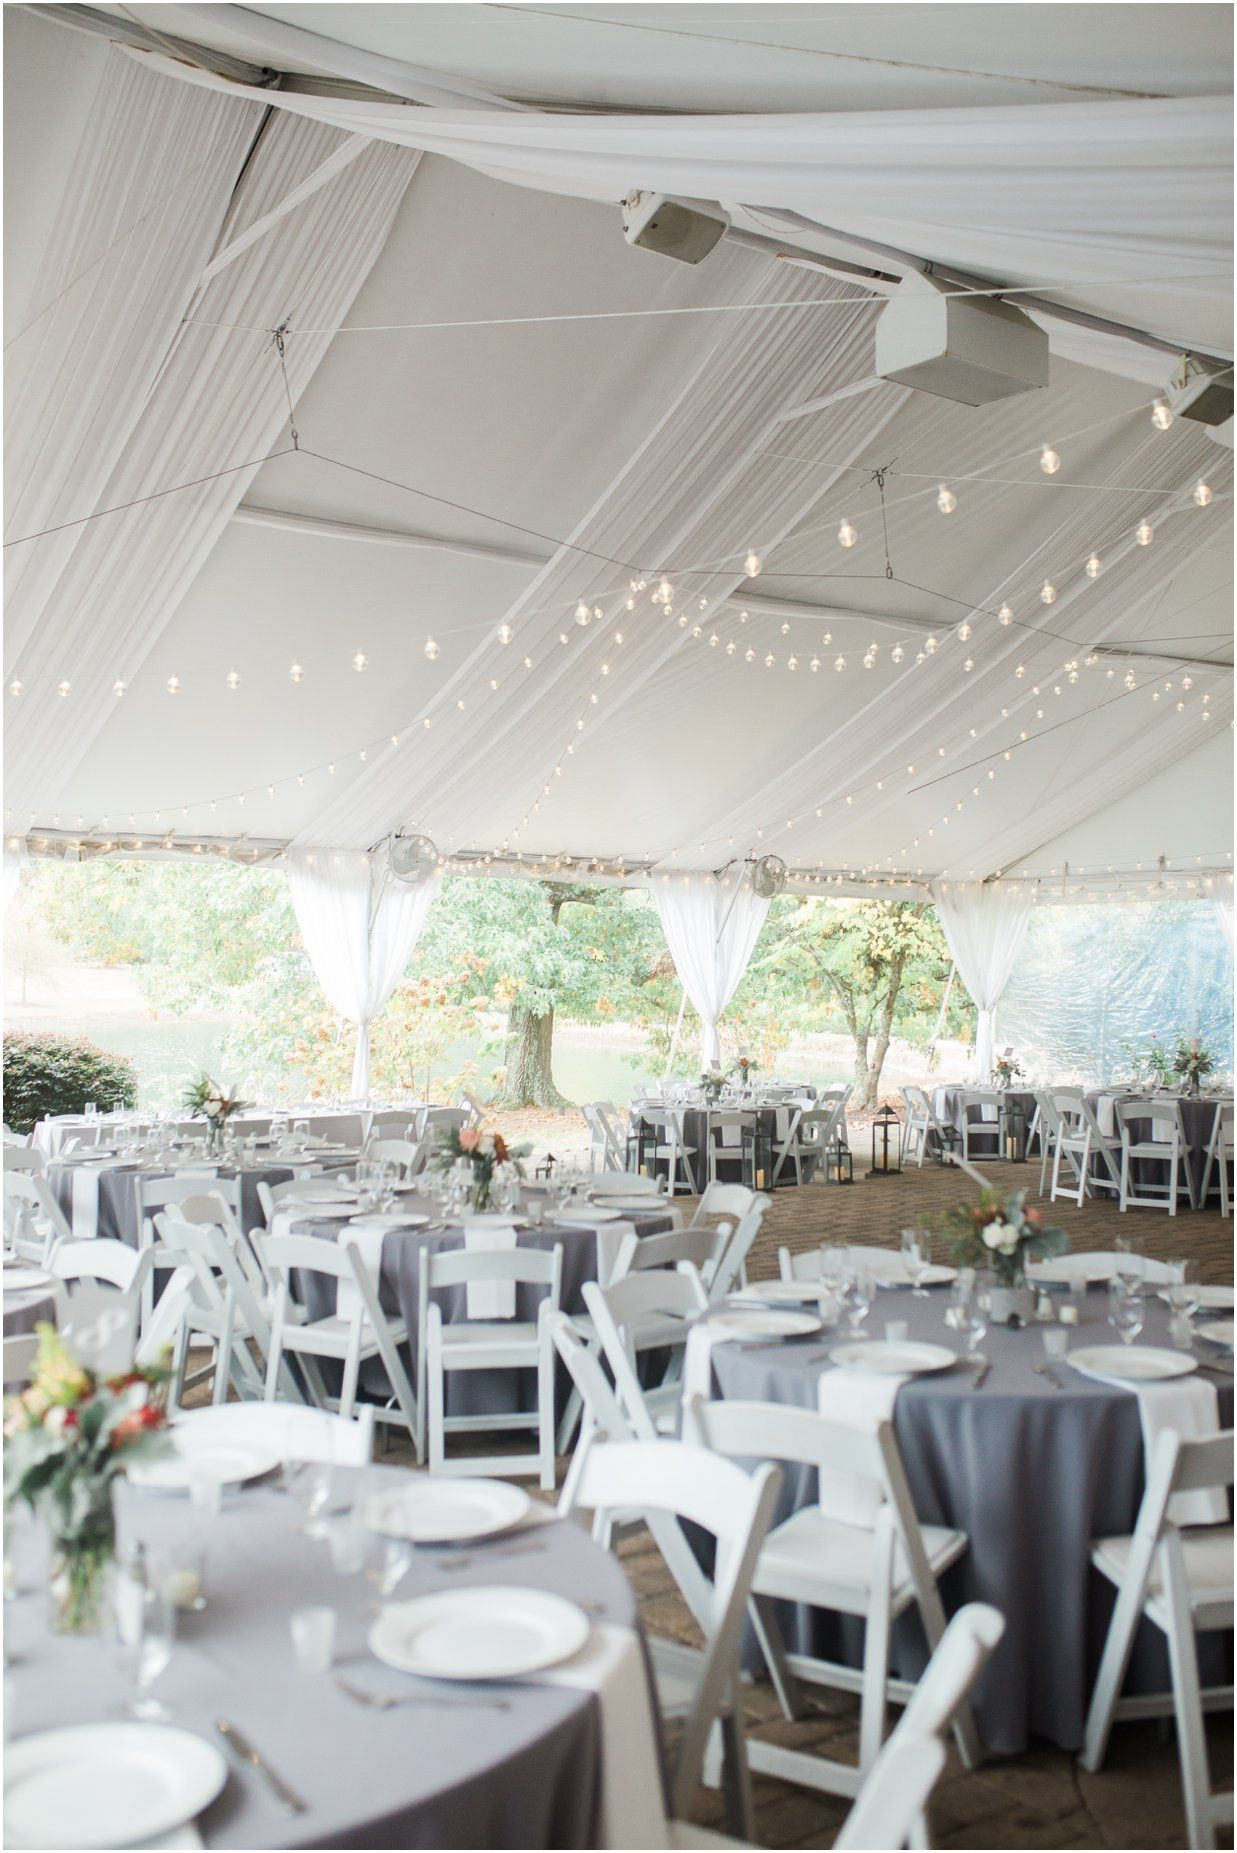 Colorful Wedding Reception Venues In Raleigh Nc Image Collection ...